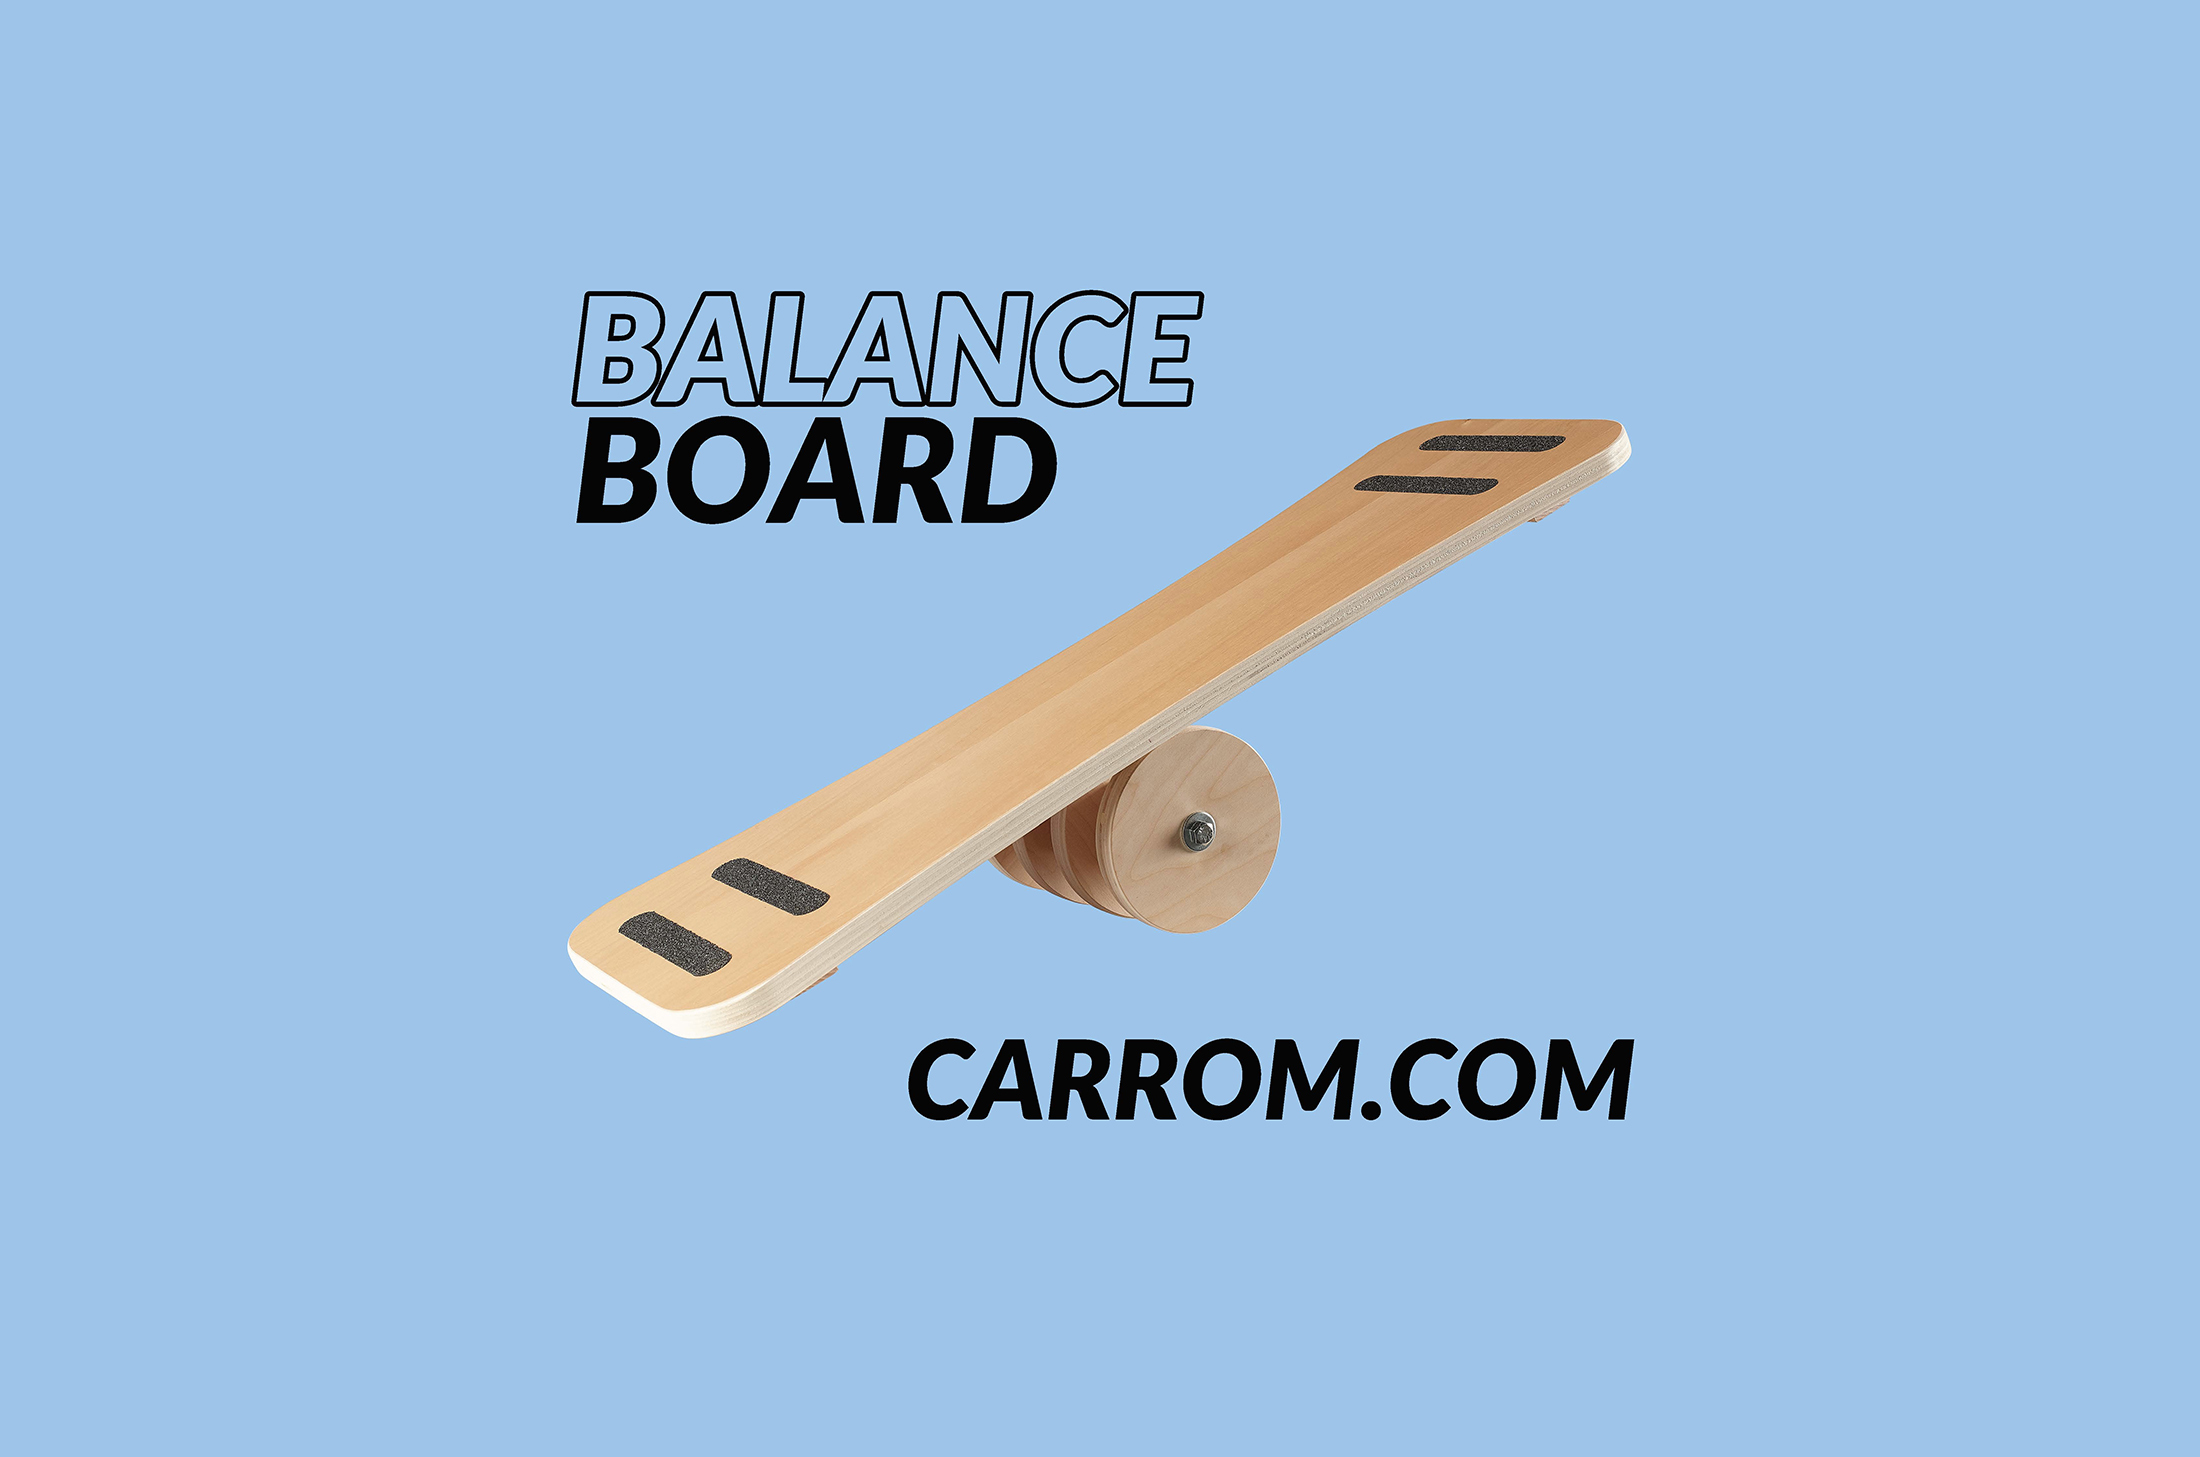 Carrom Product Spotlight: Balance Boards